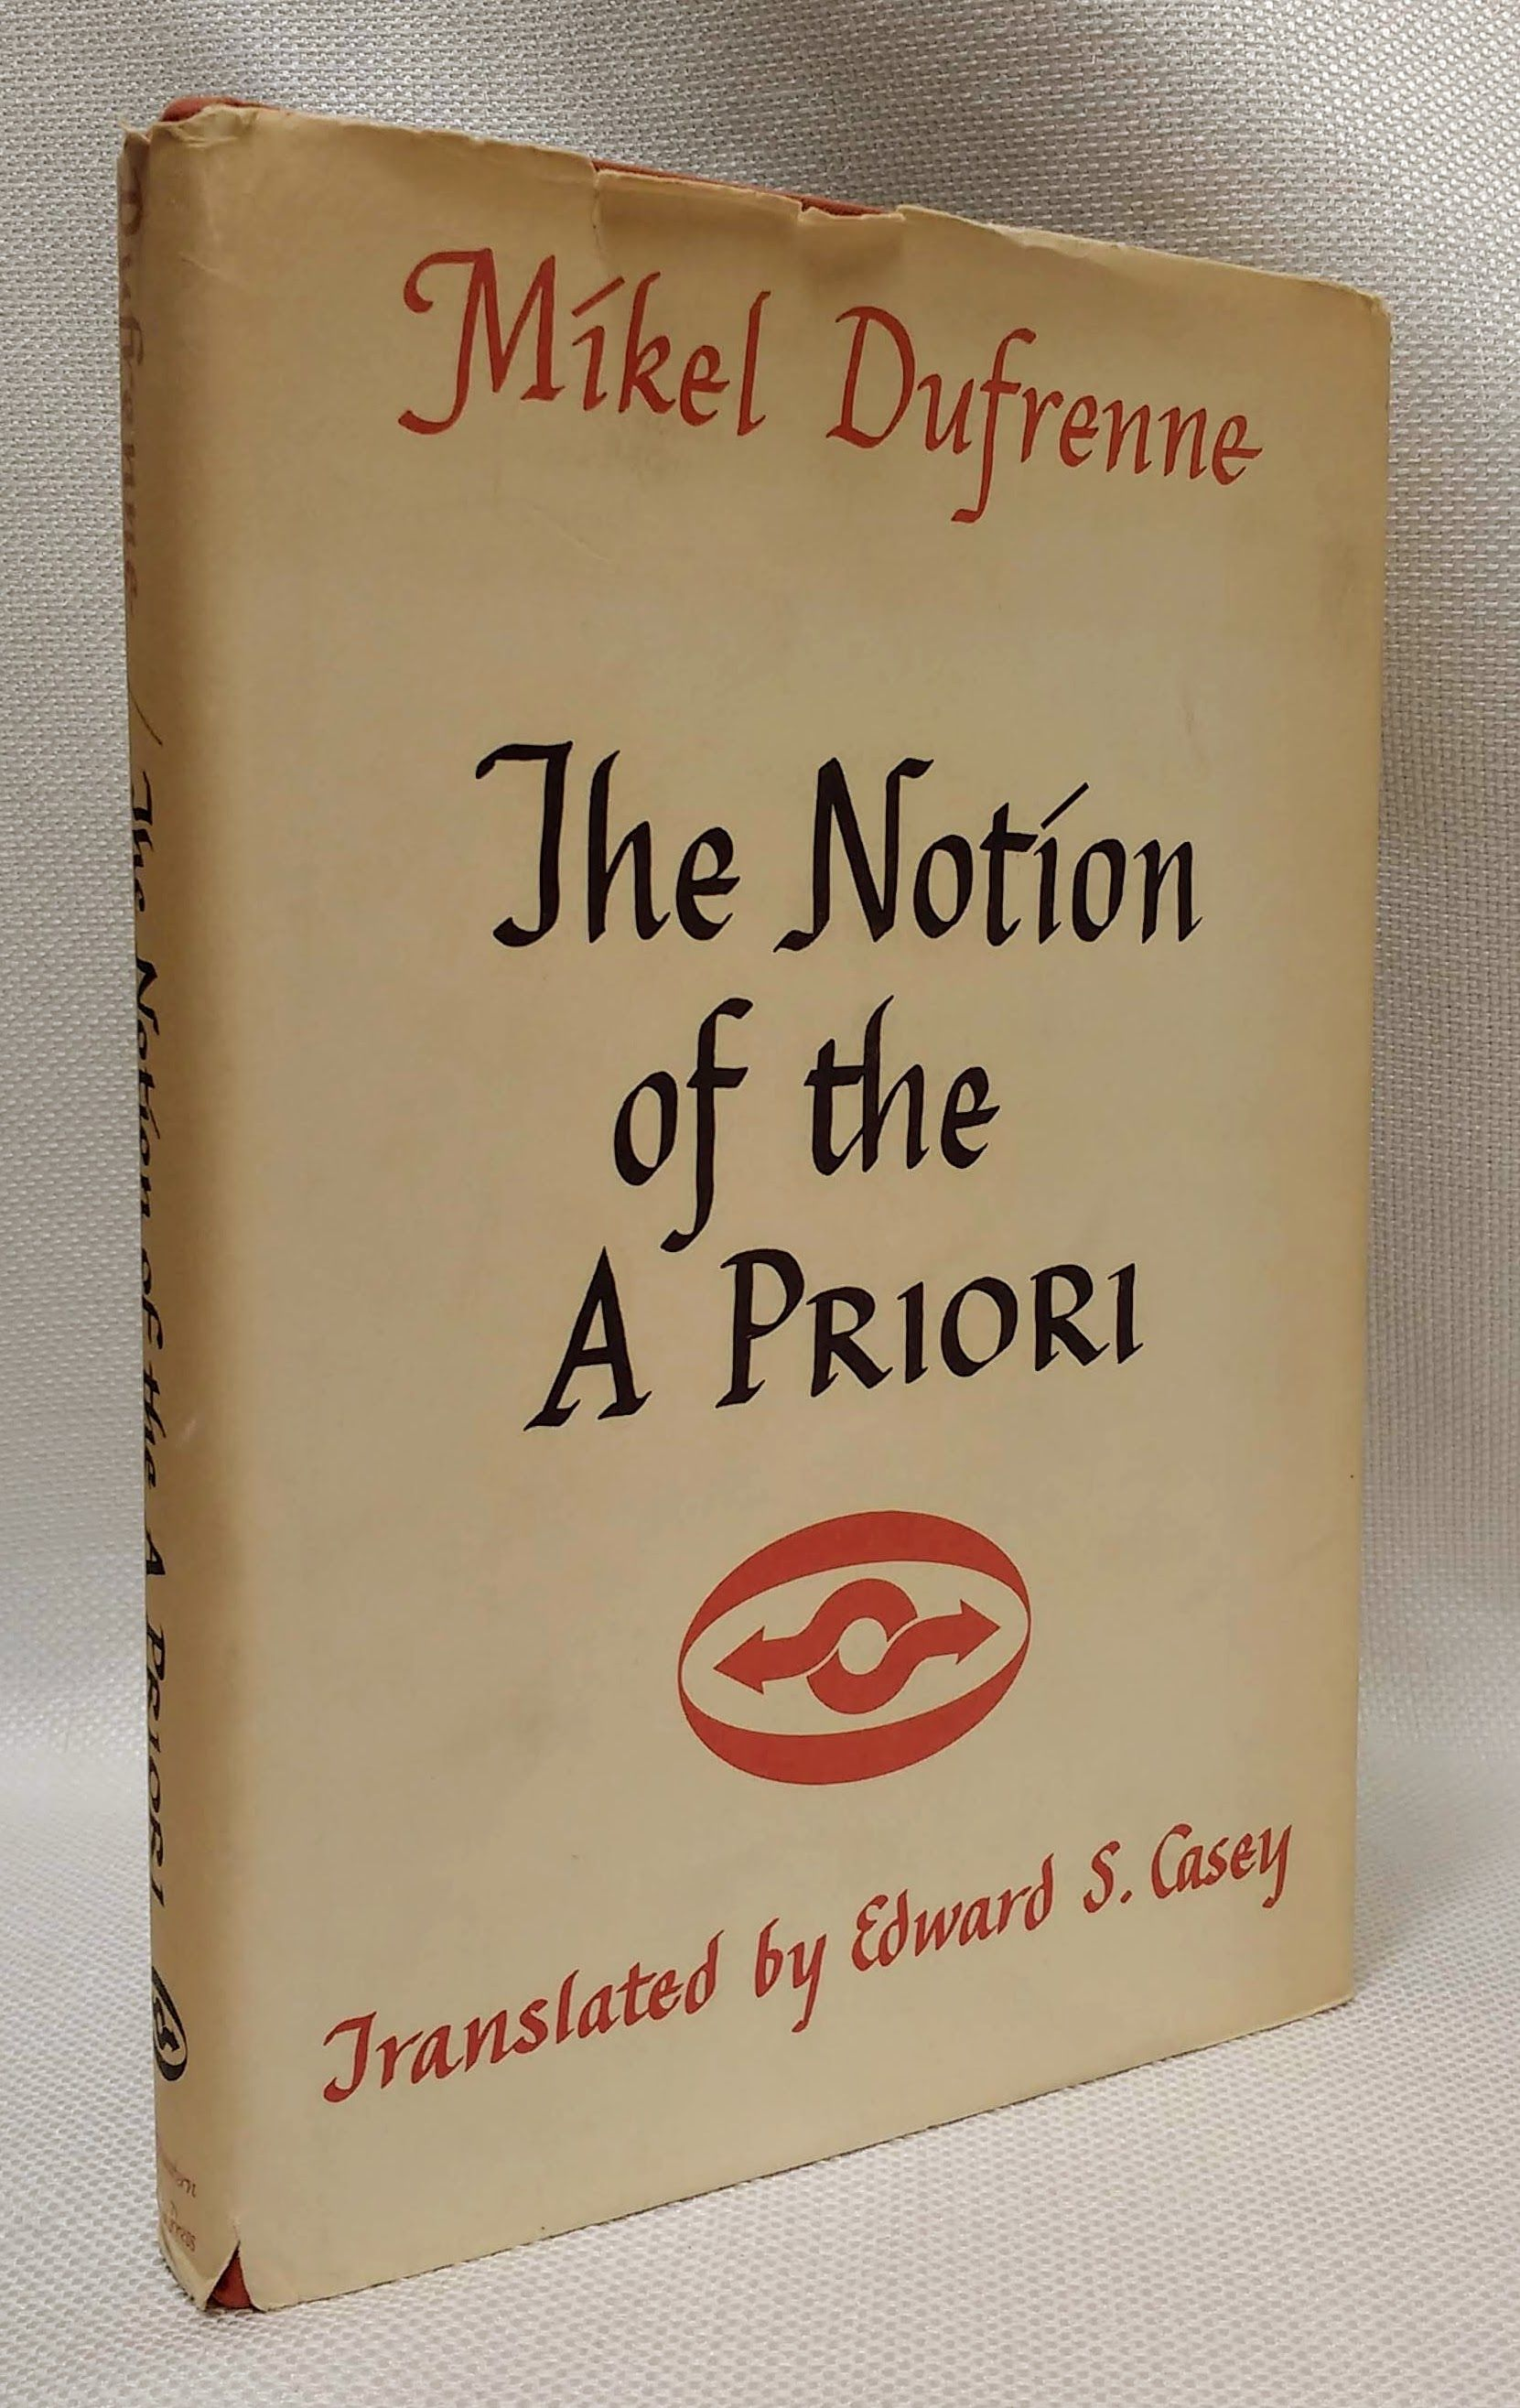 The Notion of the A Priori (Northwestern University Studies in Phenomenology & Existential Philosophy), Dufrenne, Mikel